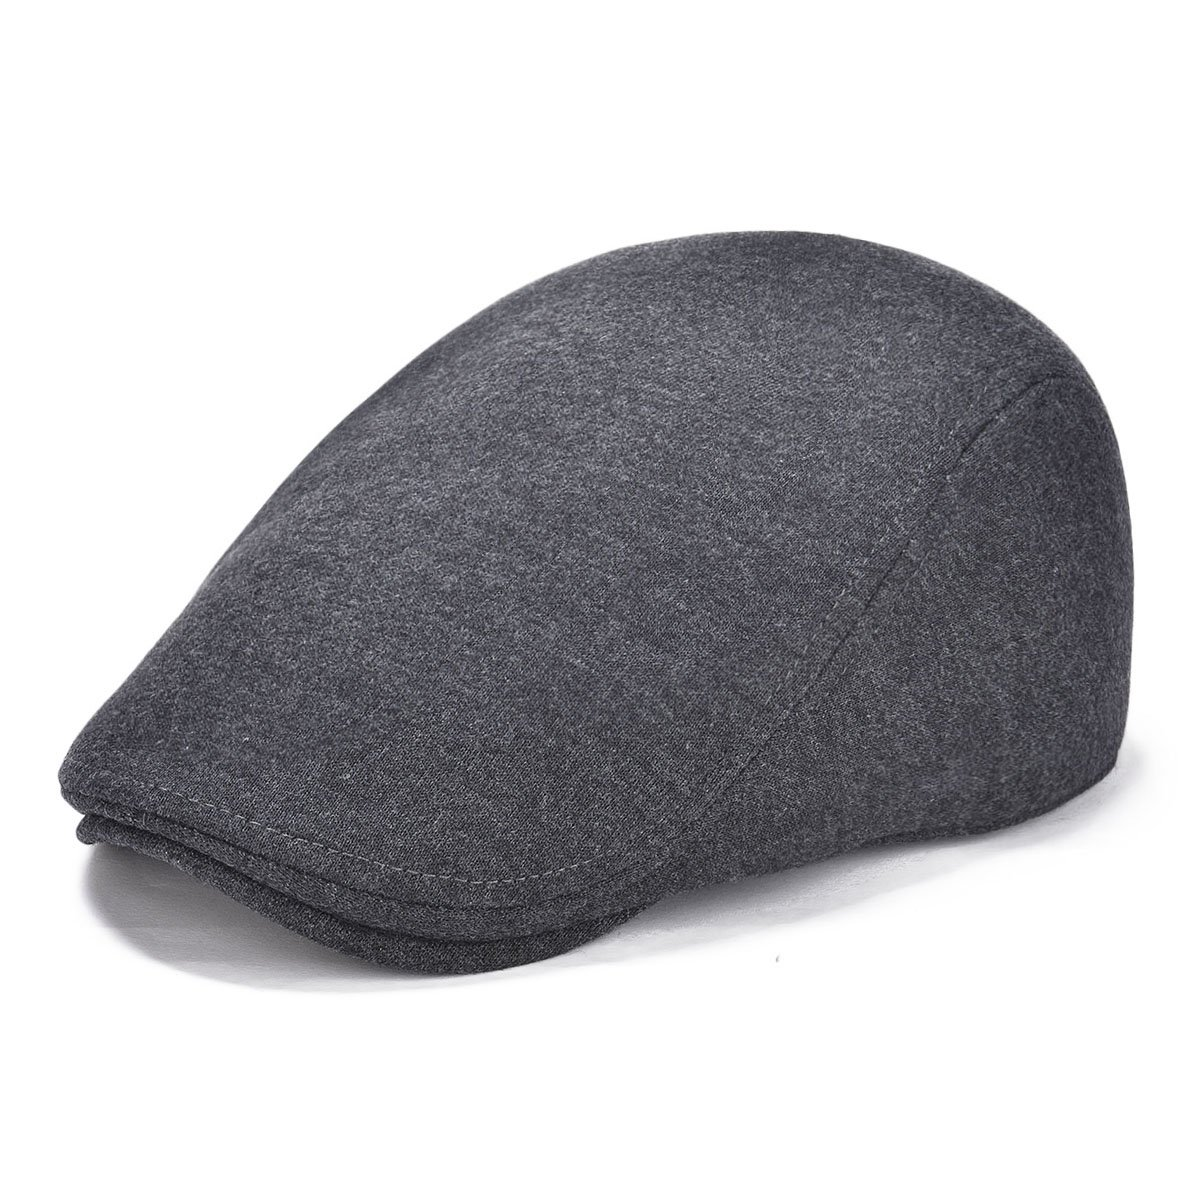 7a18f3948 Best Rated in Men's Flat Caps & Helpful Customer Reviews - Amazon.co.uk